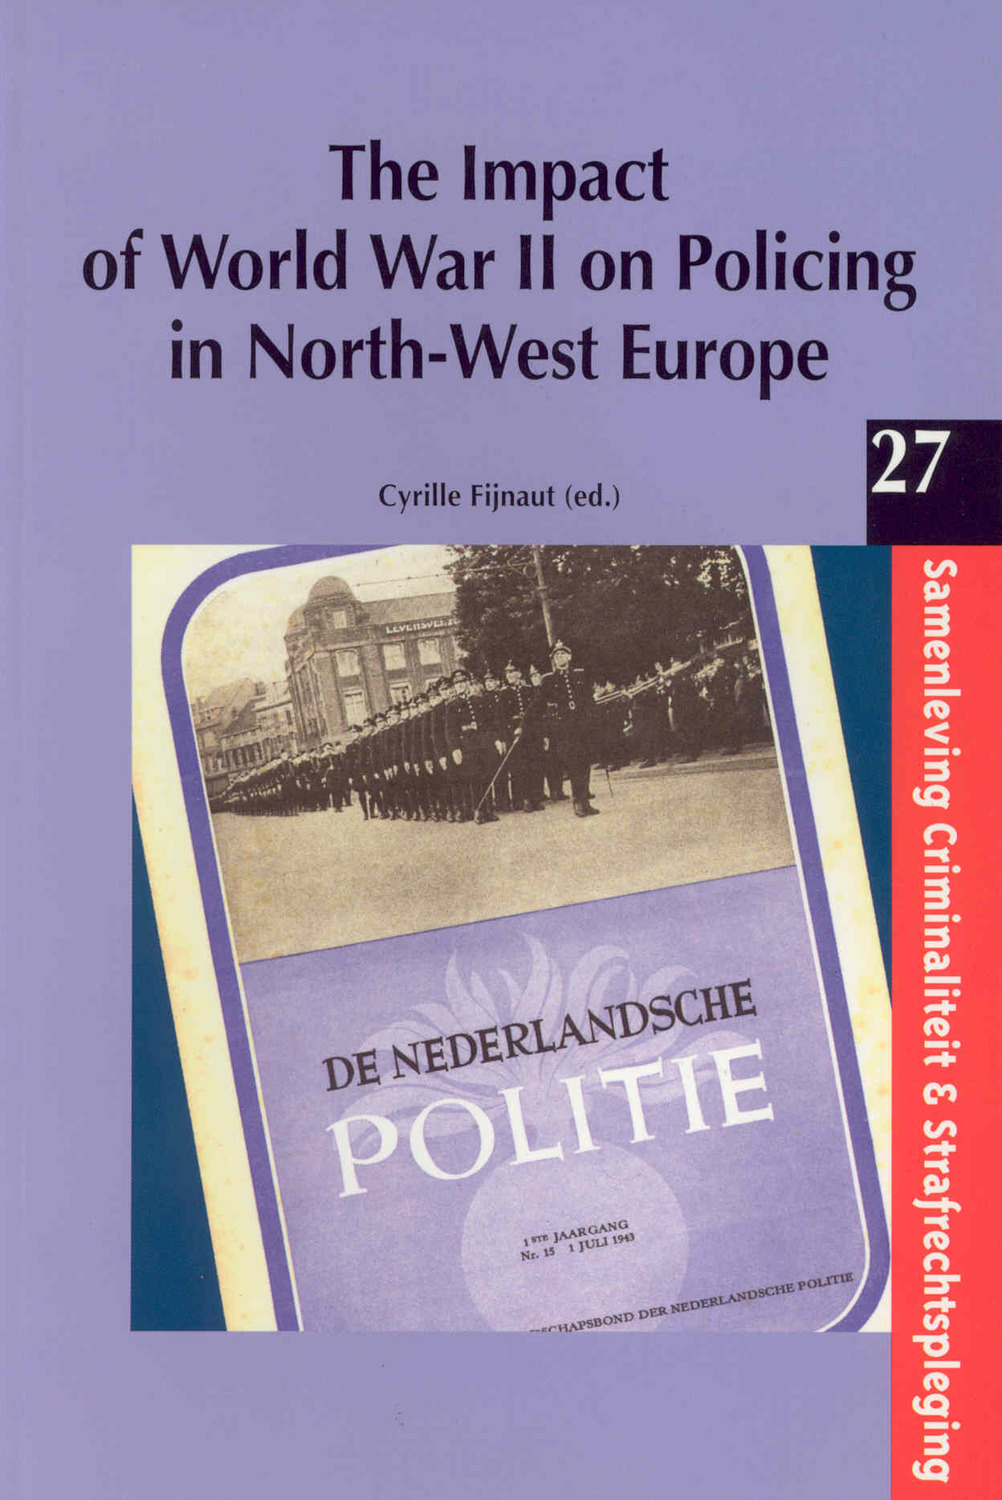 The Impact of World War II on Policing in North-West Europe